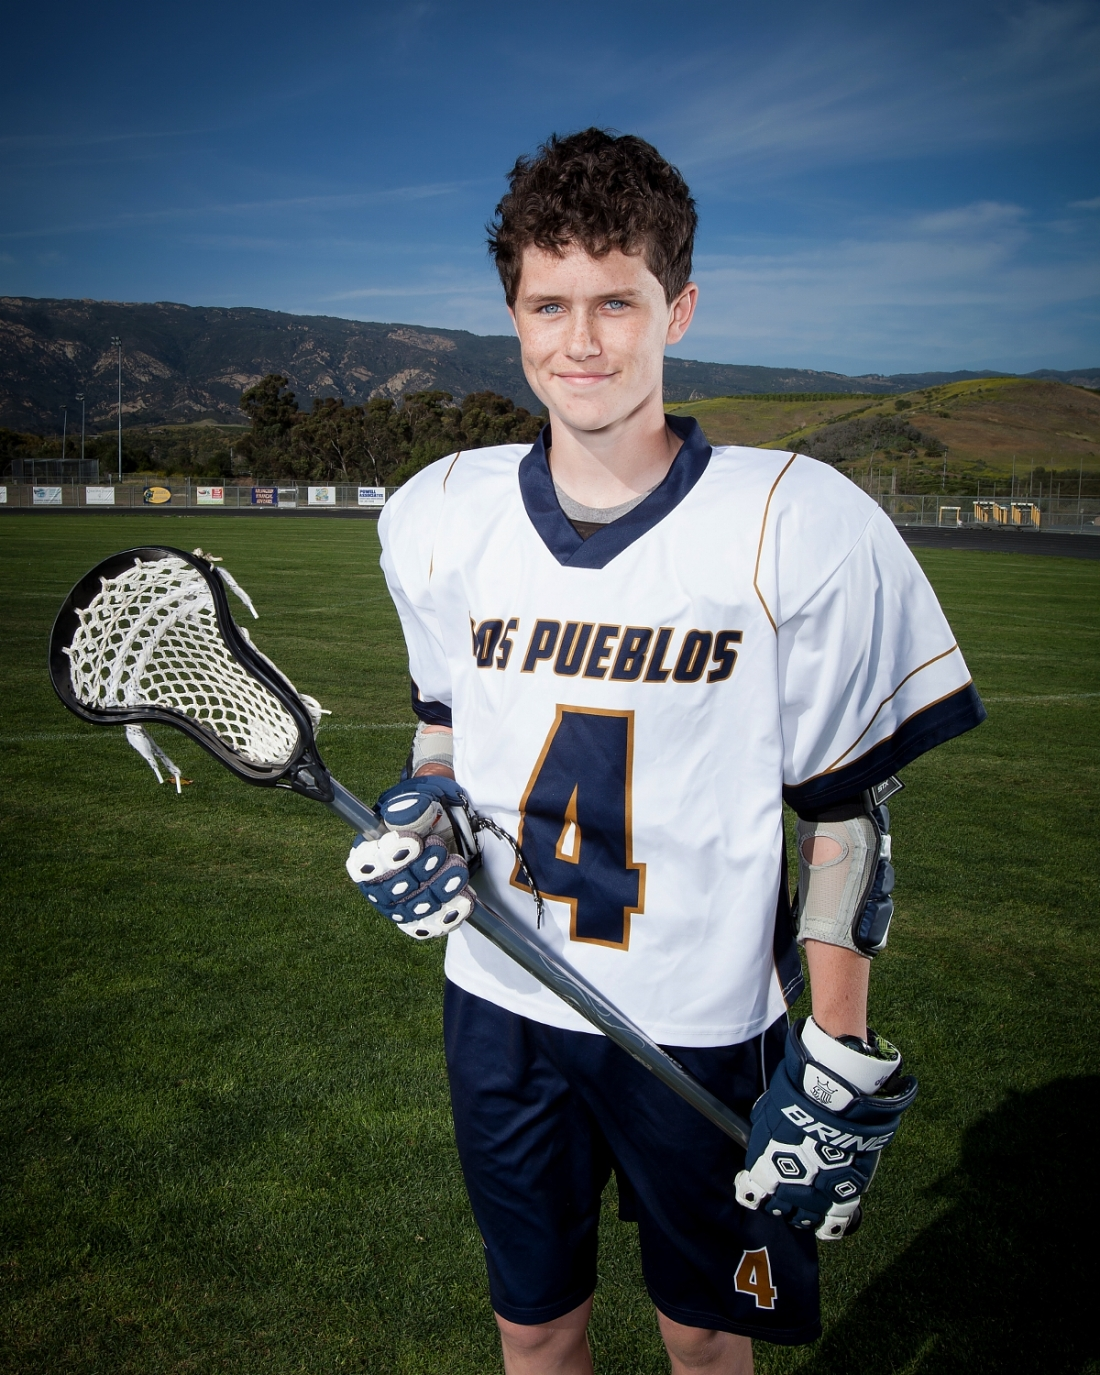 This spring marks the very first season of DP Lacrosse EVER!  So happy Max gets to participate in this history making milestone for DP Athletics.  Go Chargers!